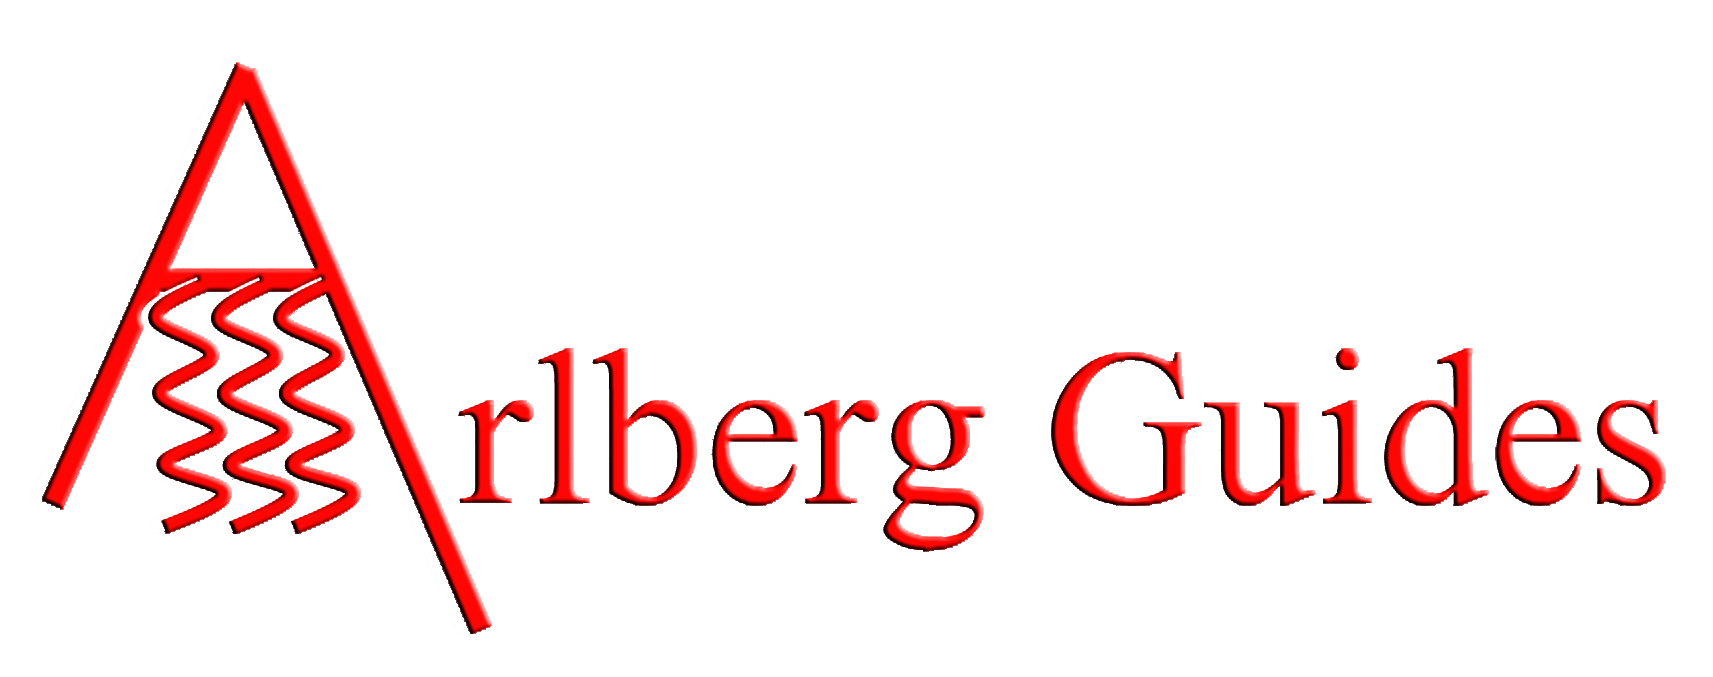 Logo Arlberg Guides - no shades